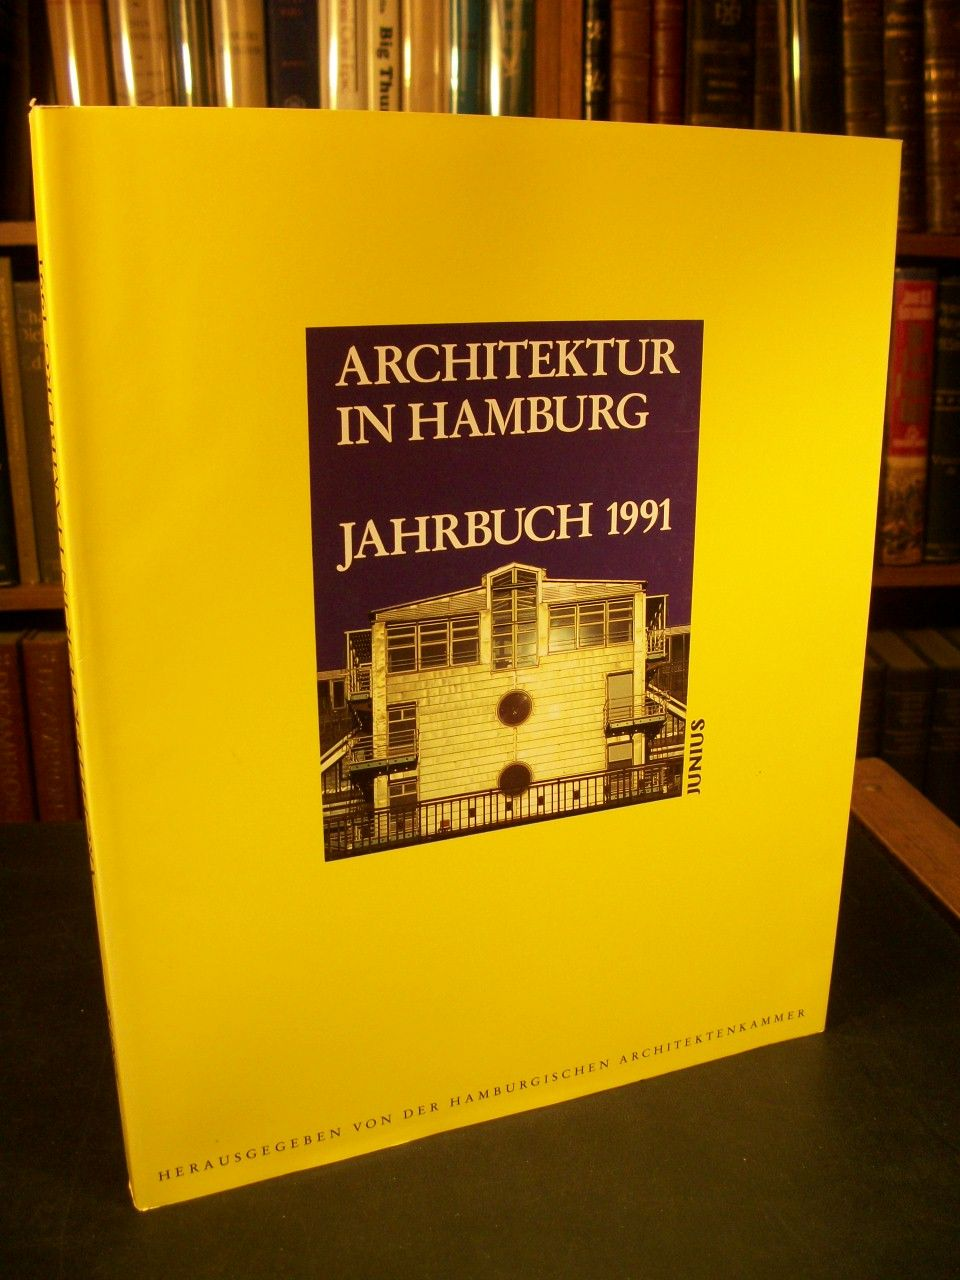 architektur in hamburg jahrbuch 1991 by hamburgischen architektenkammer paperback 1991. Black Bedroom Furniture Sets. Home Design Ideas